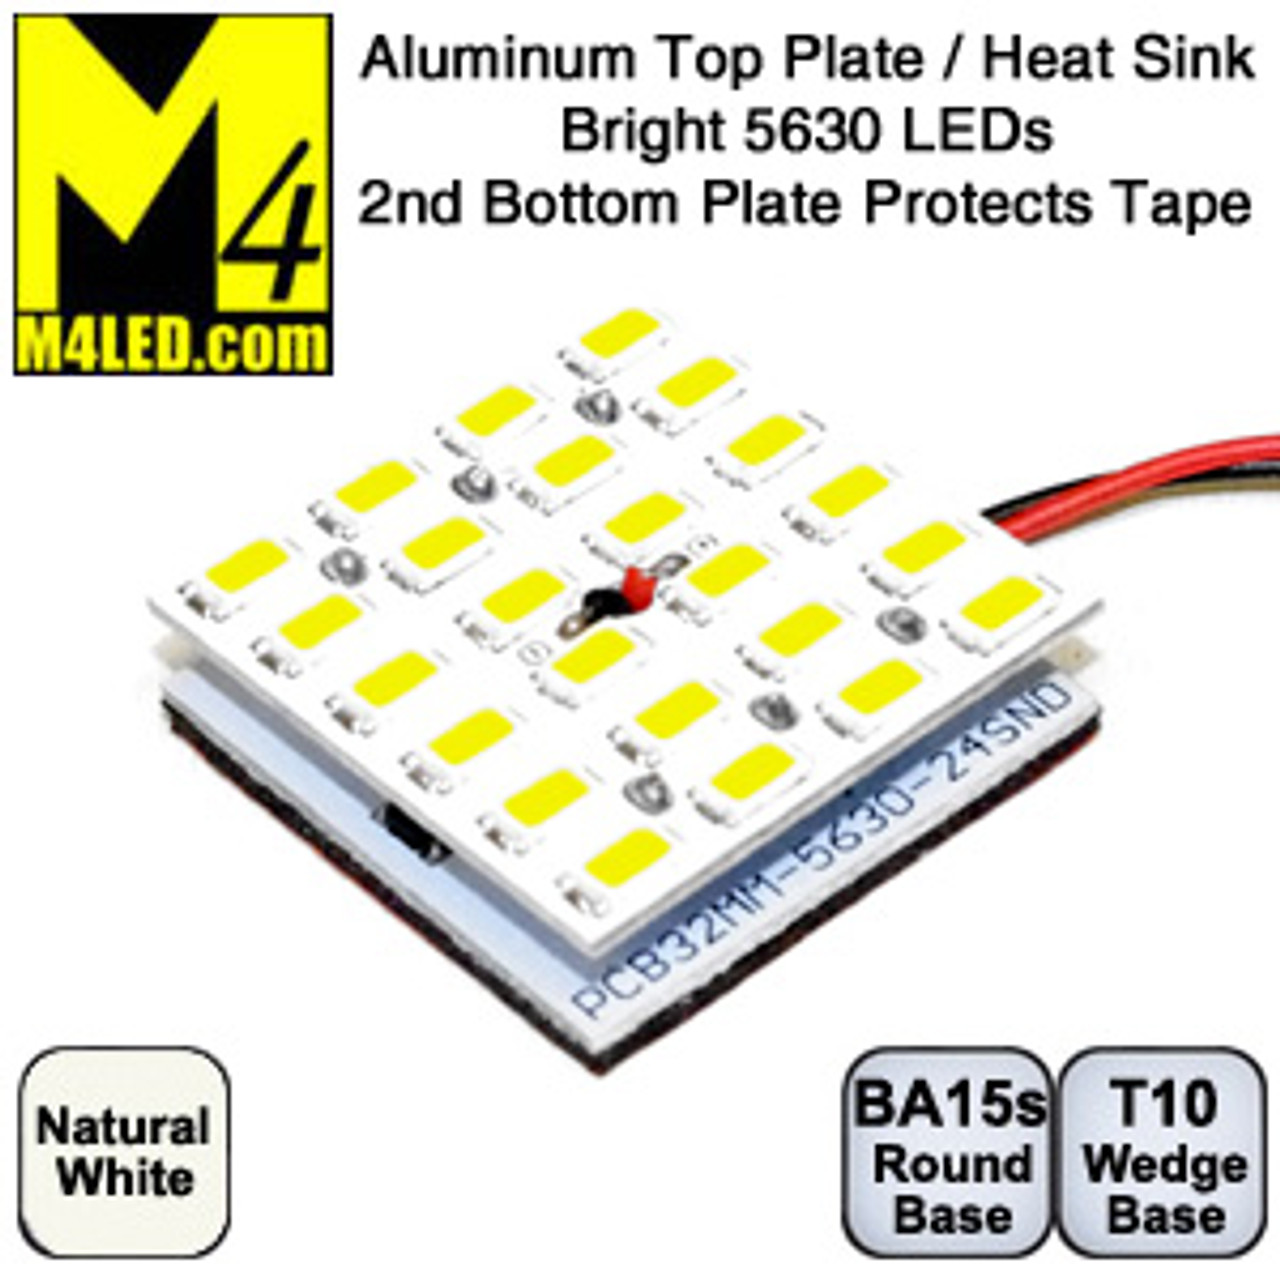 ALPLATE-24-5630-NW Natural White Double Aluminum Plate